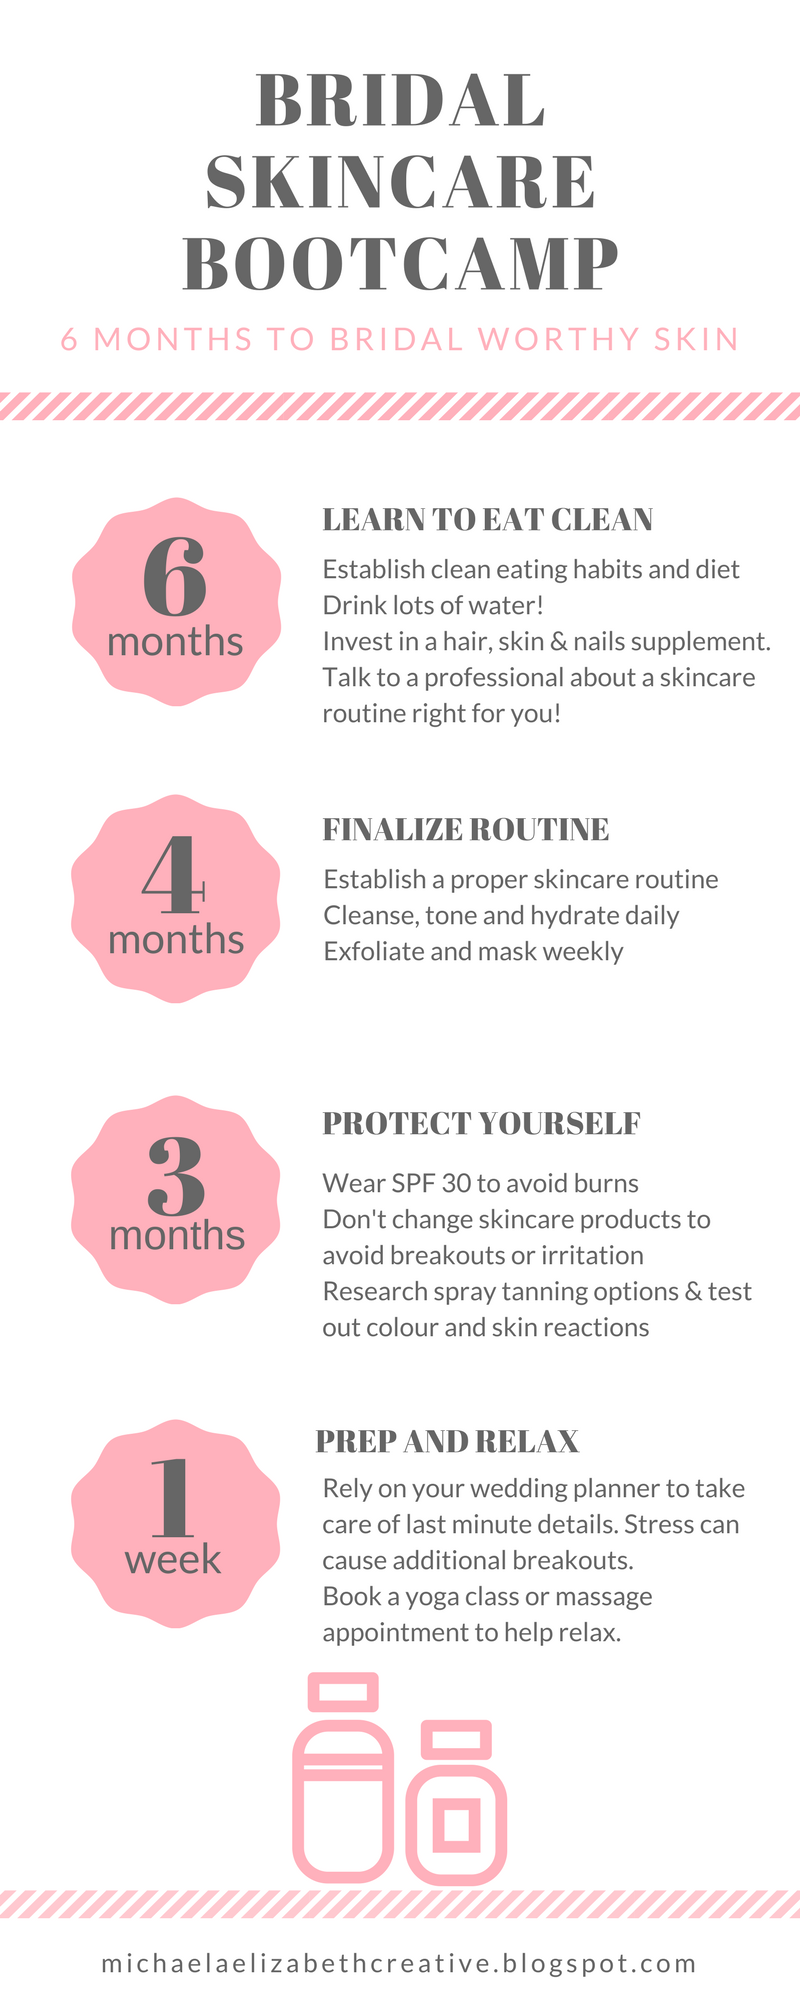 Wedding skincare routine: 10 month guide to bridal ready skin